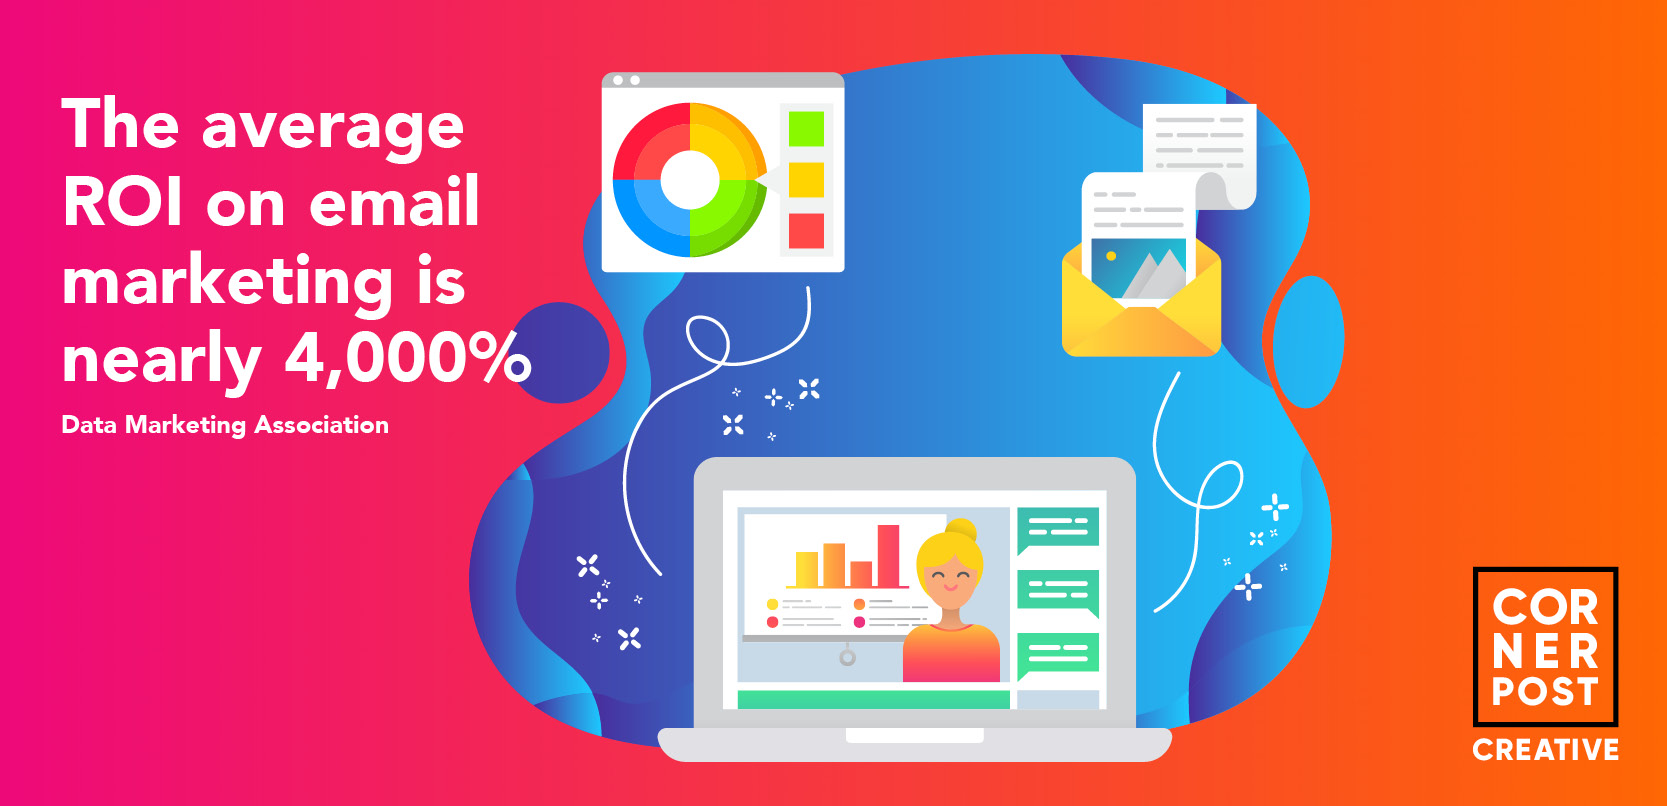 The average ROI on email marketing is nearly 4000% - Over half the world use email - CornerPost Creative